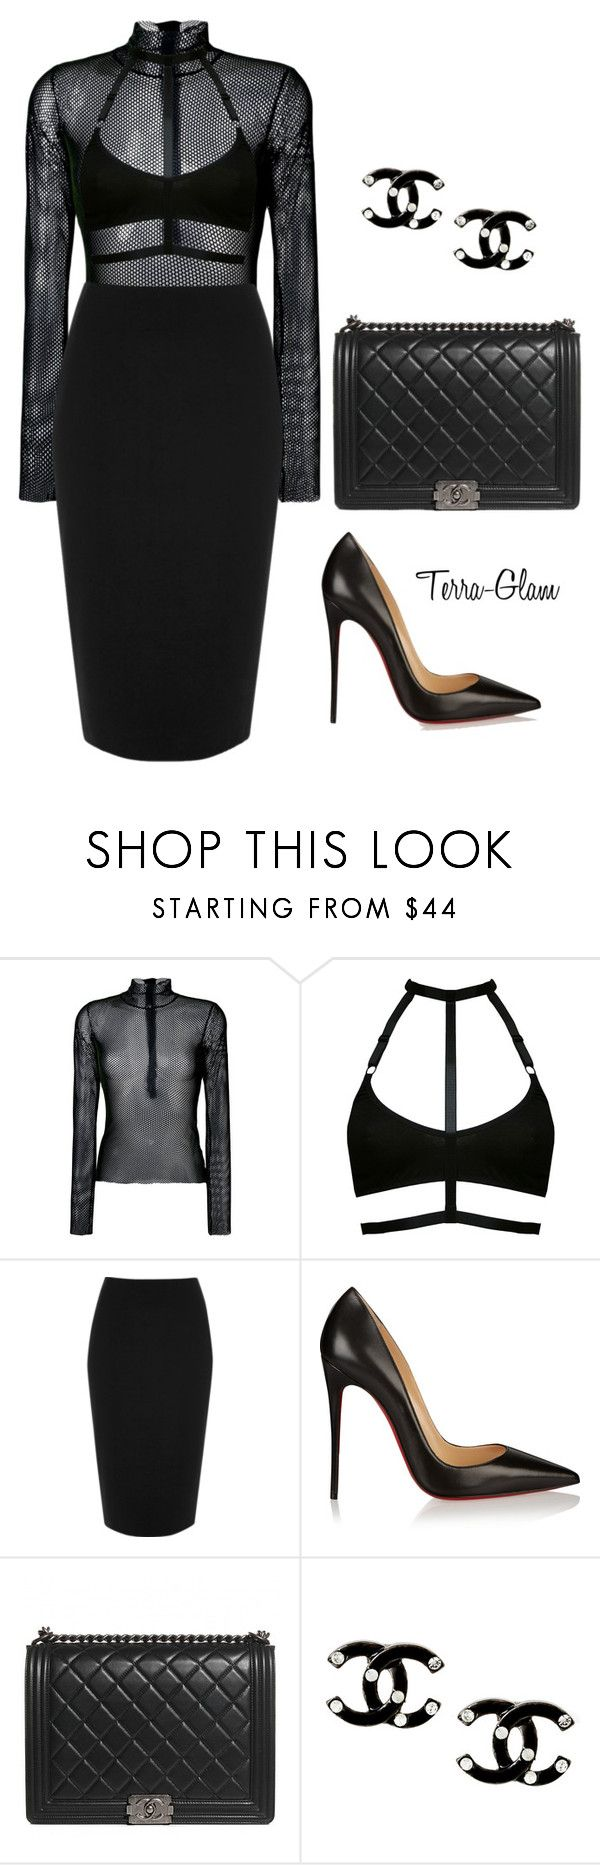 """""""Black Chanel"""" by terra-glam ❤ liked on Polyvore featuring MM6 Maison Margiela, River Island, Christian Louboutin and Chanel"""